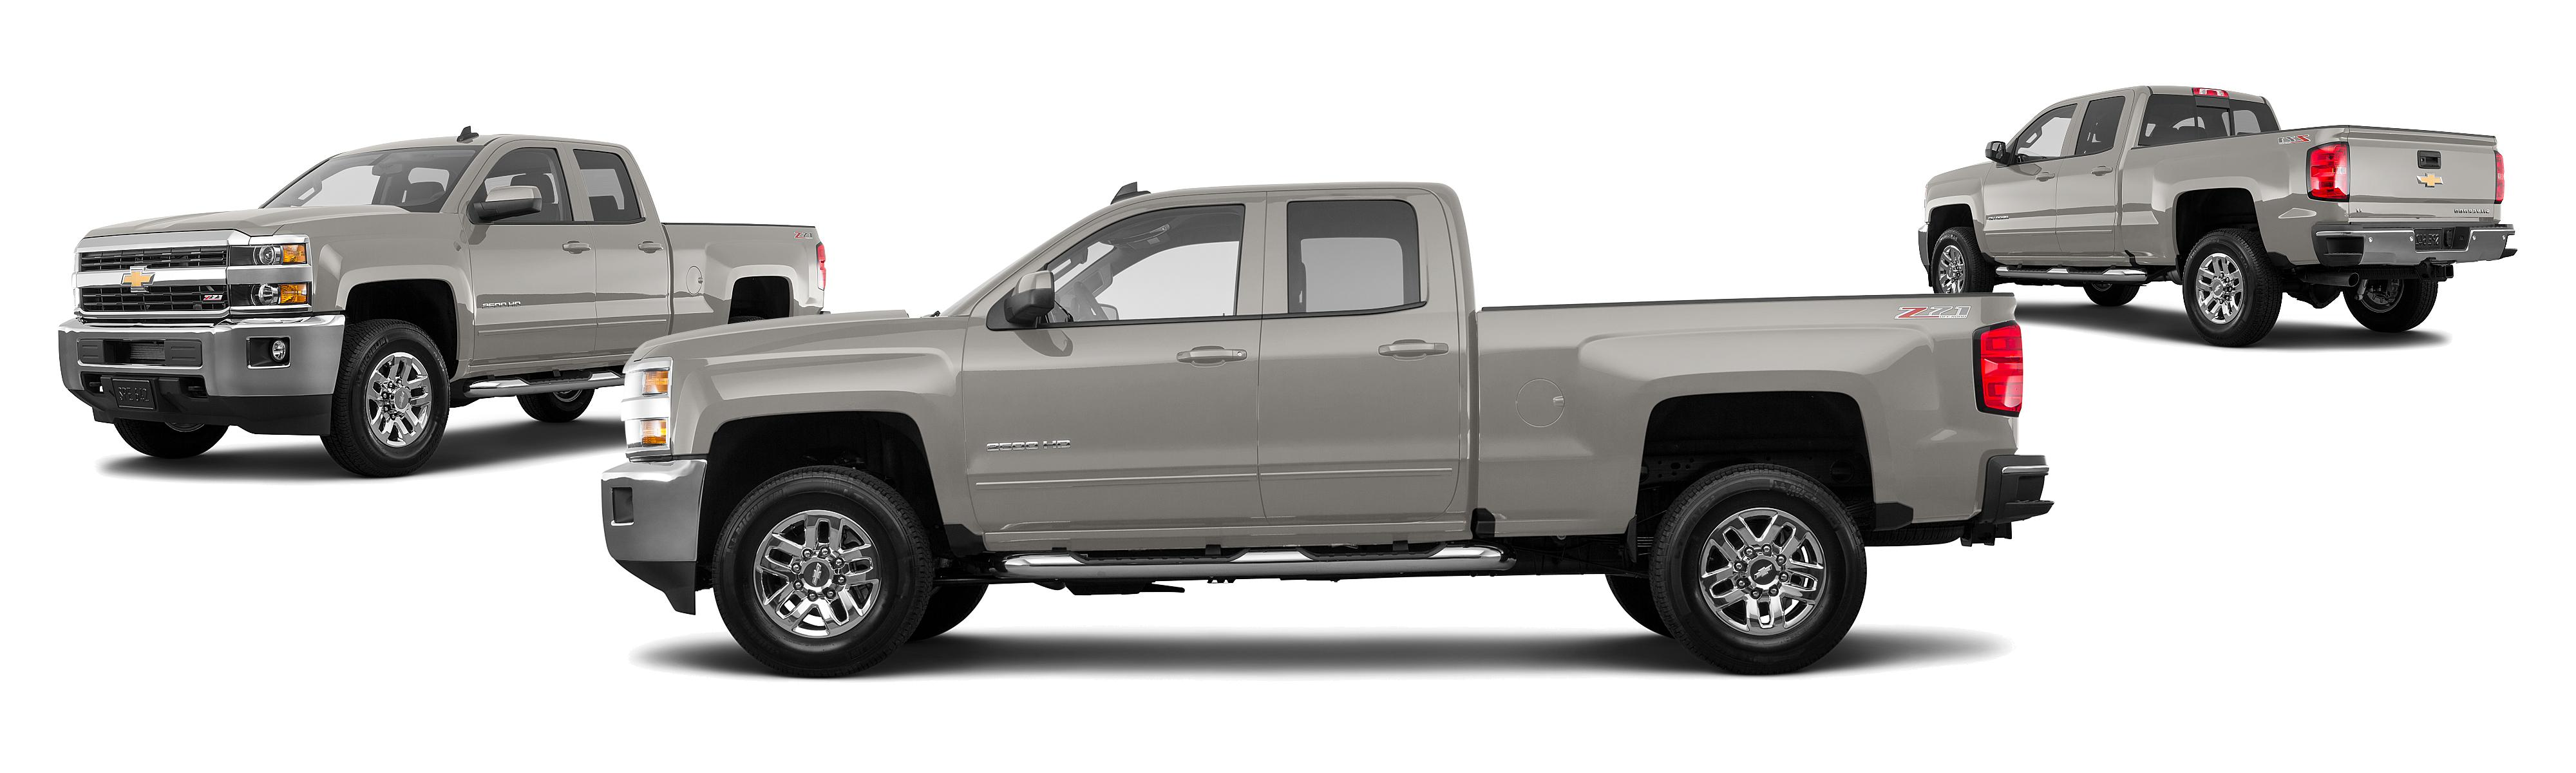 used sale l co chevrolet longmont high silverado for in arvada country cars